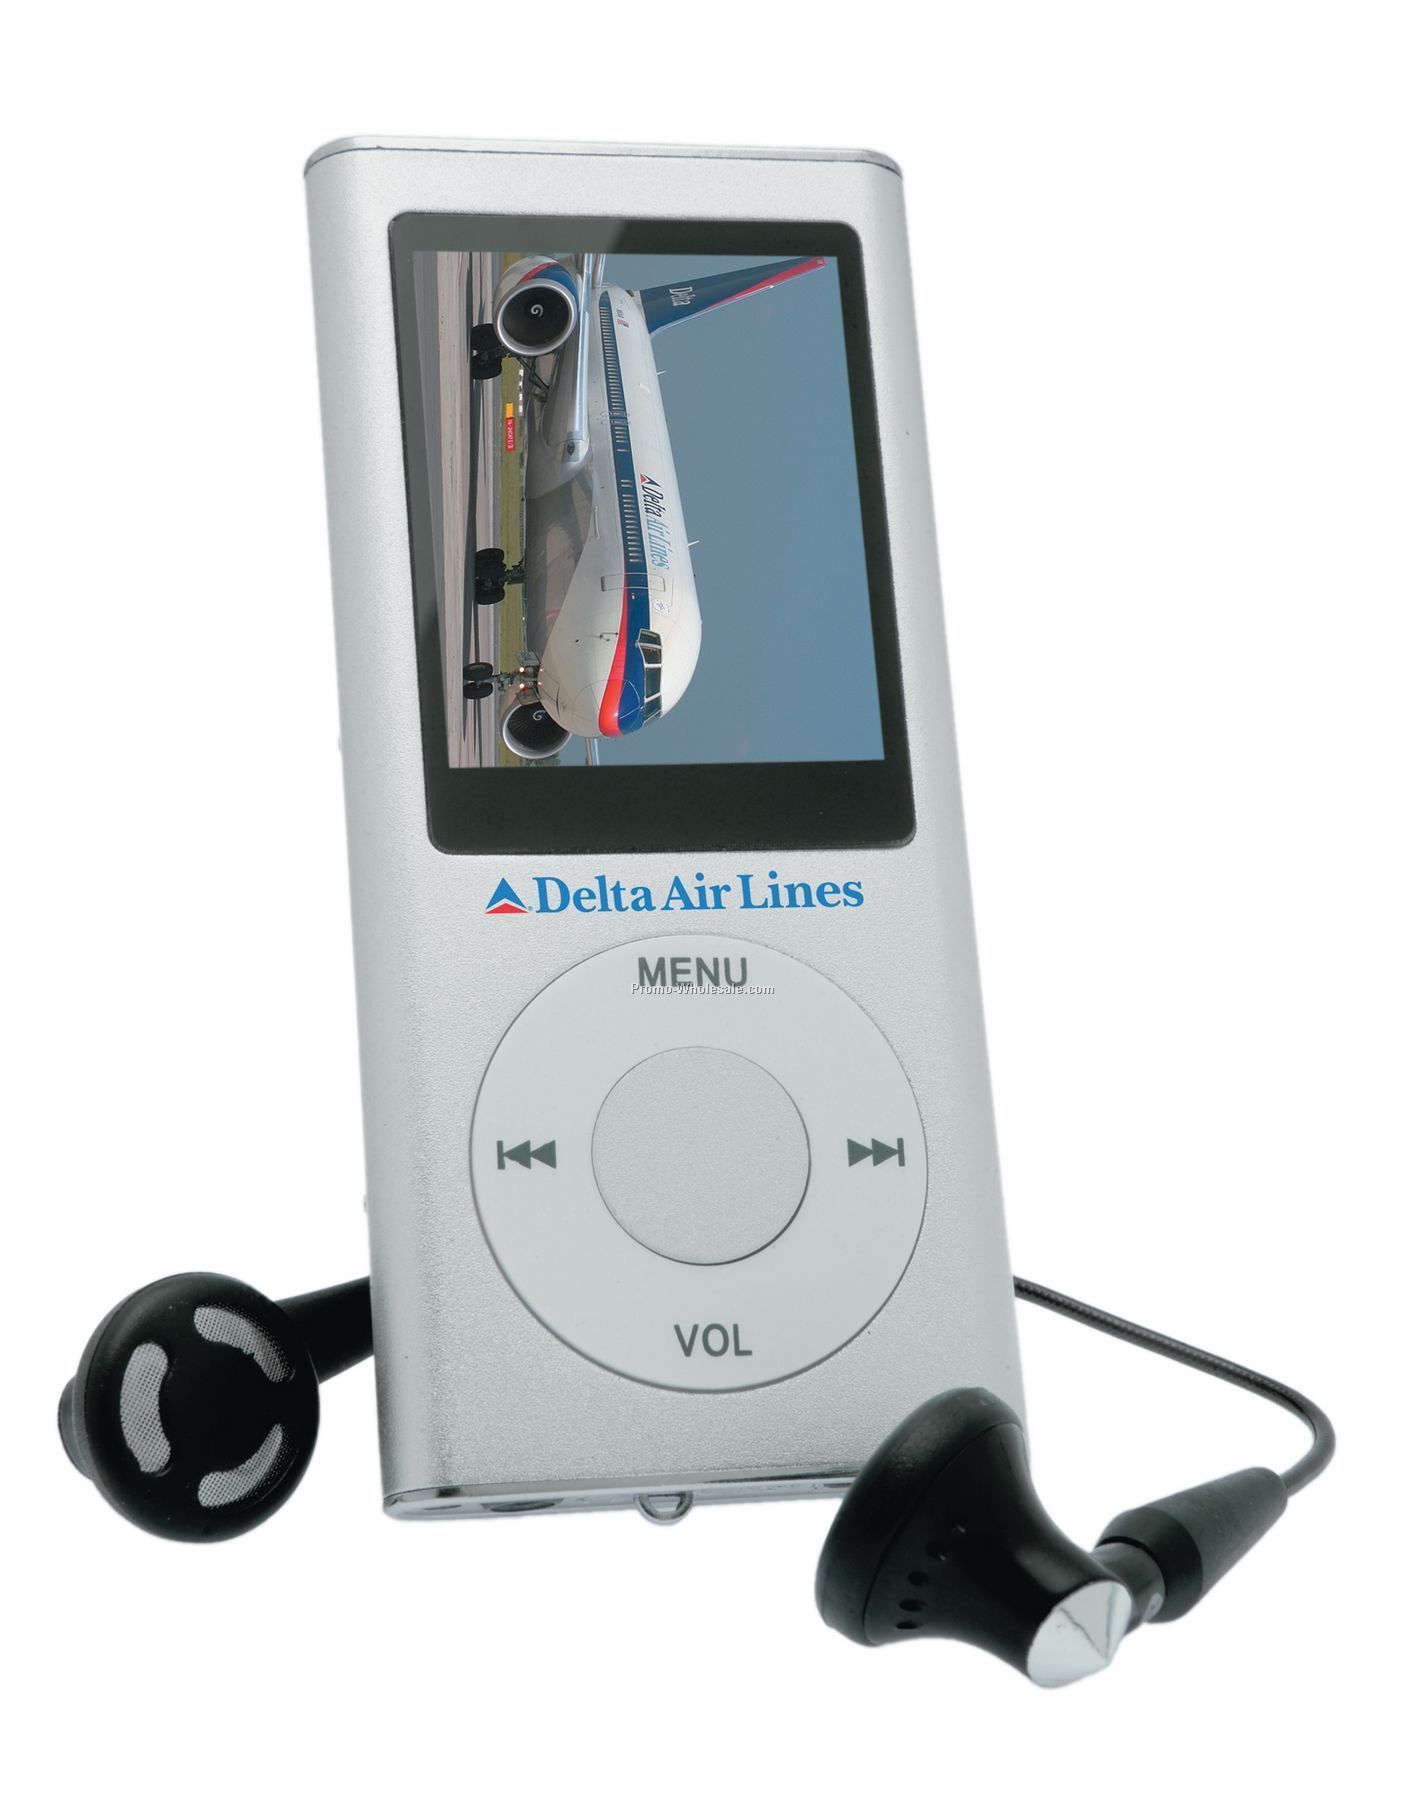 Juba Silver Portable Media Player - 1 Gb